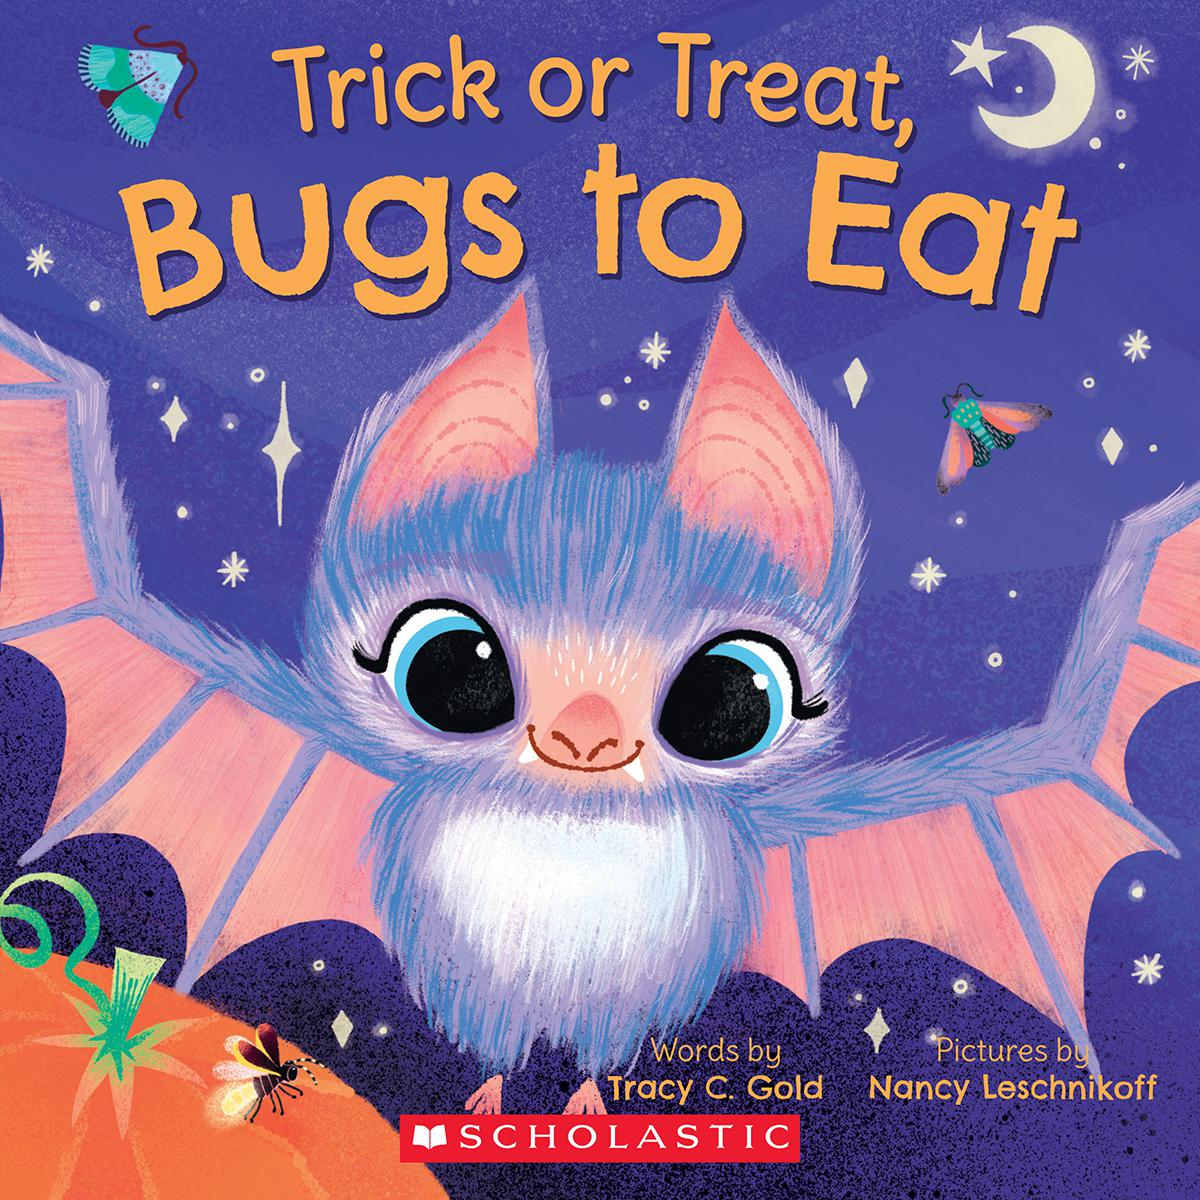 Trick or Treat, Bugs to Eat